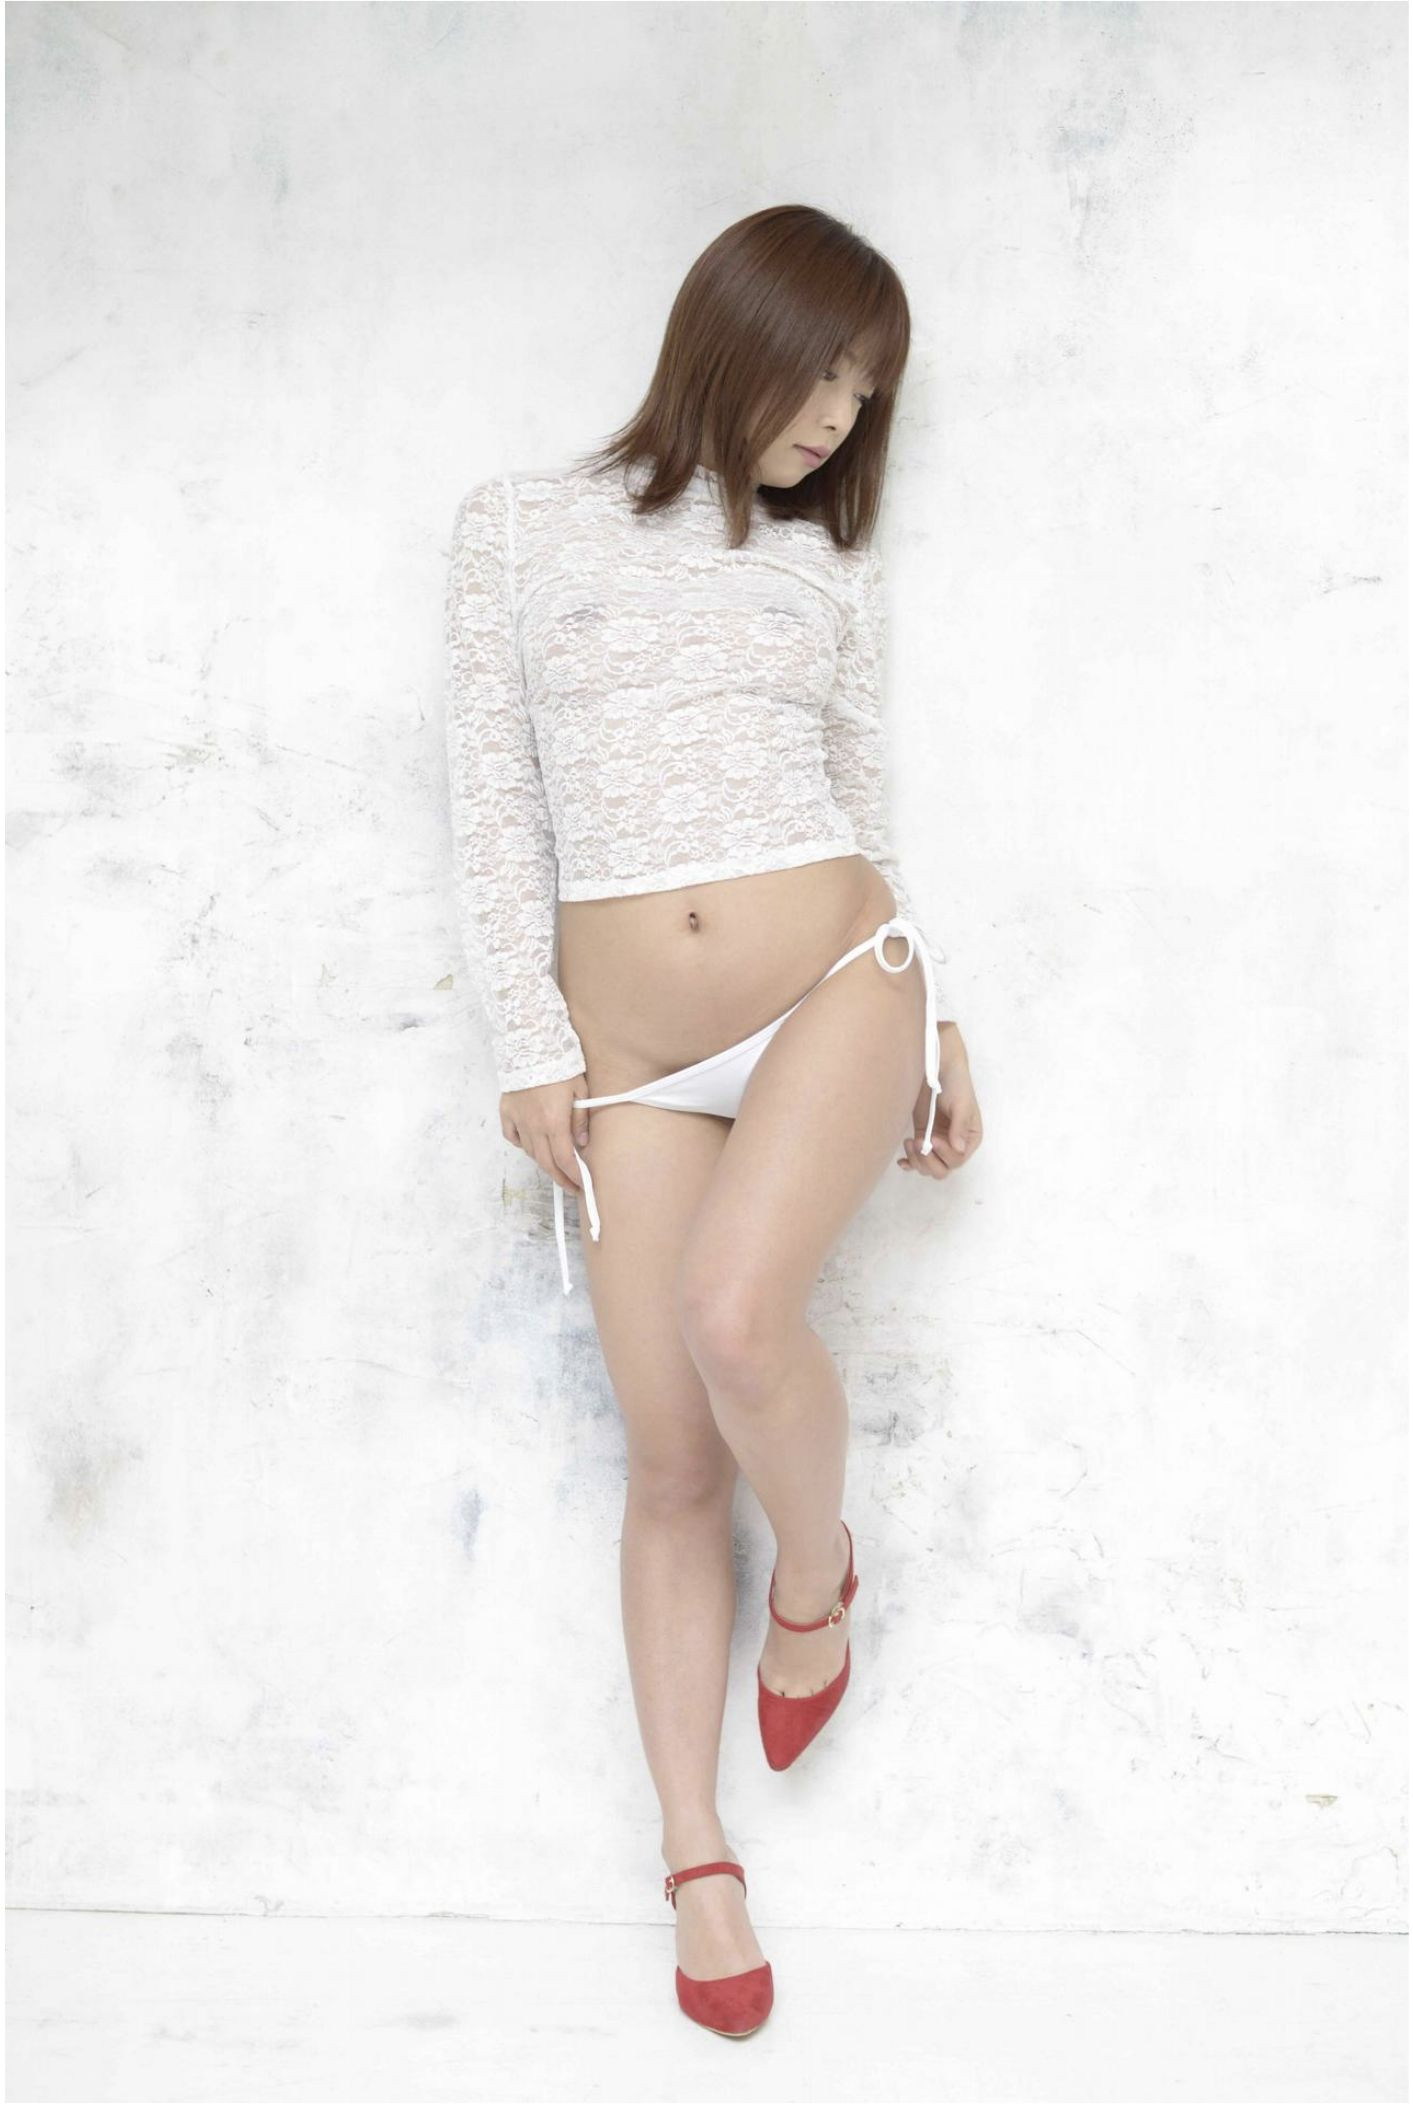 SOFT ON DEMAND GRAVURE COLLECTION 紗倉まな04 photo 023